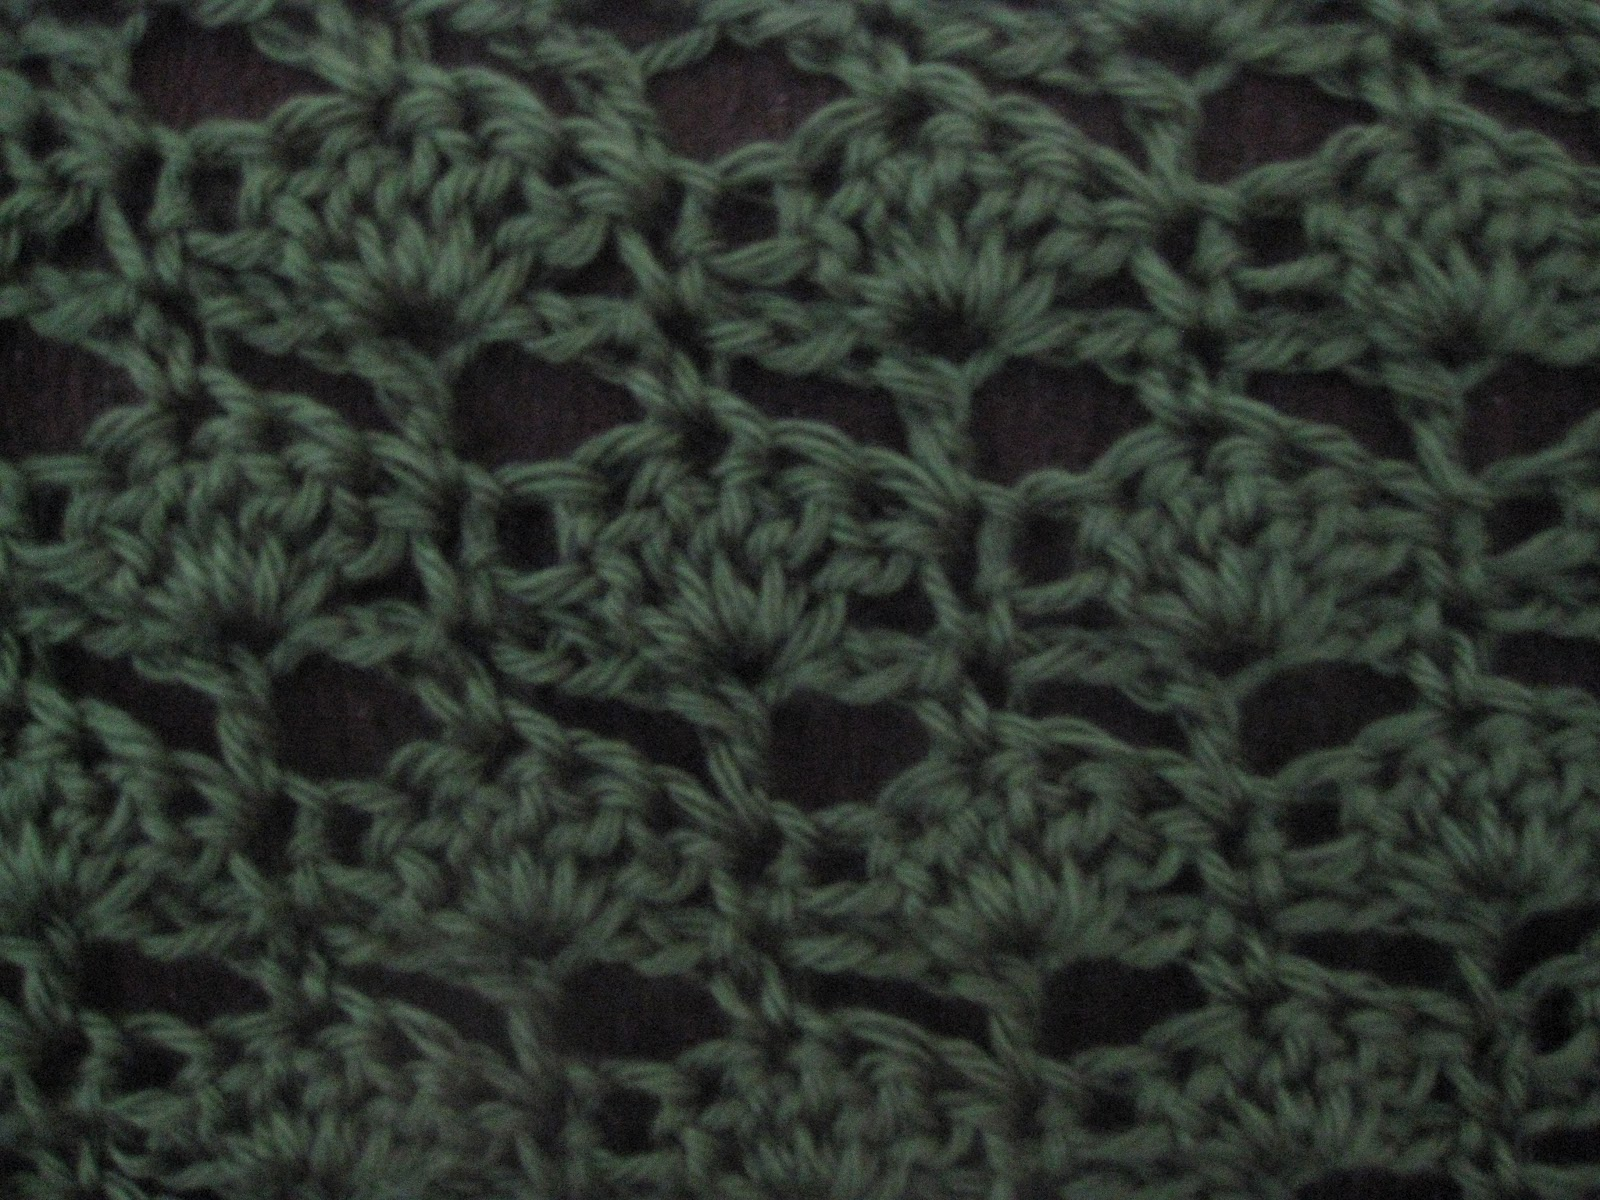 Crochet Stitches Shell : Engineered Crochet: Spaced Shell Stitch